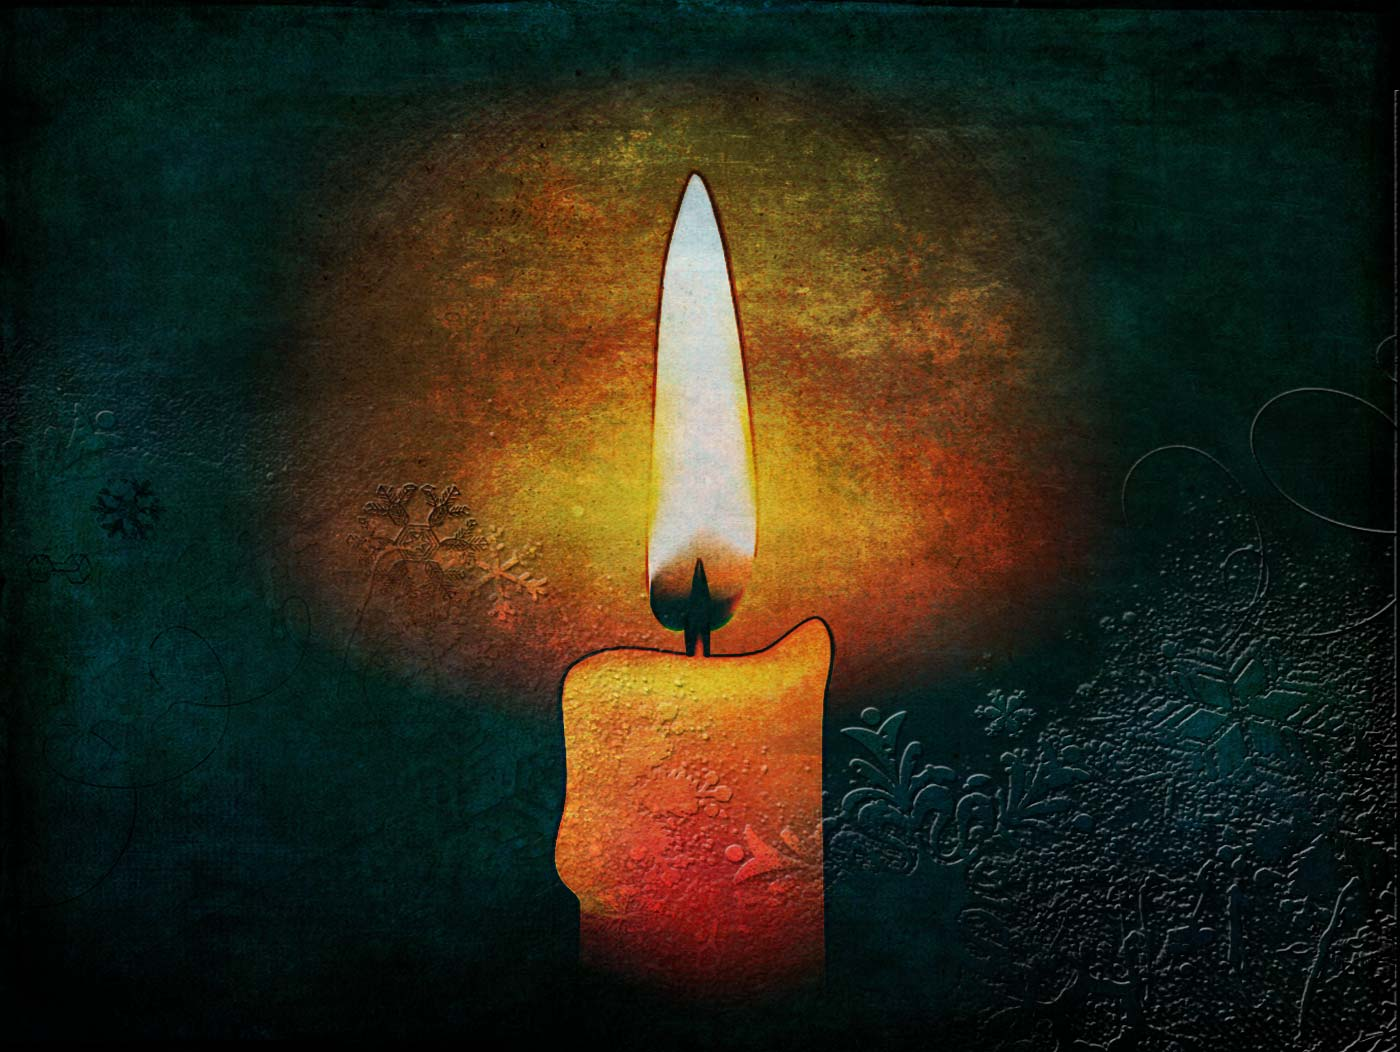 A single lit candle, a golden glow, the hint of snowflakes across the image